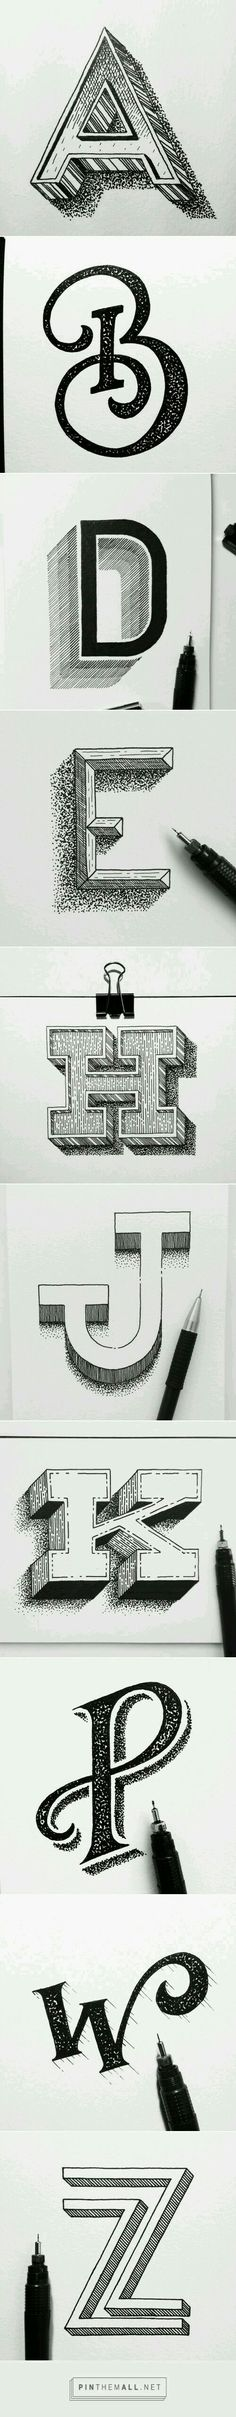 Hand Lettering | Design | Typography | Type | Logo Design | Black + White